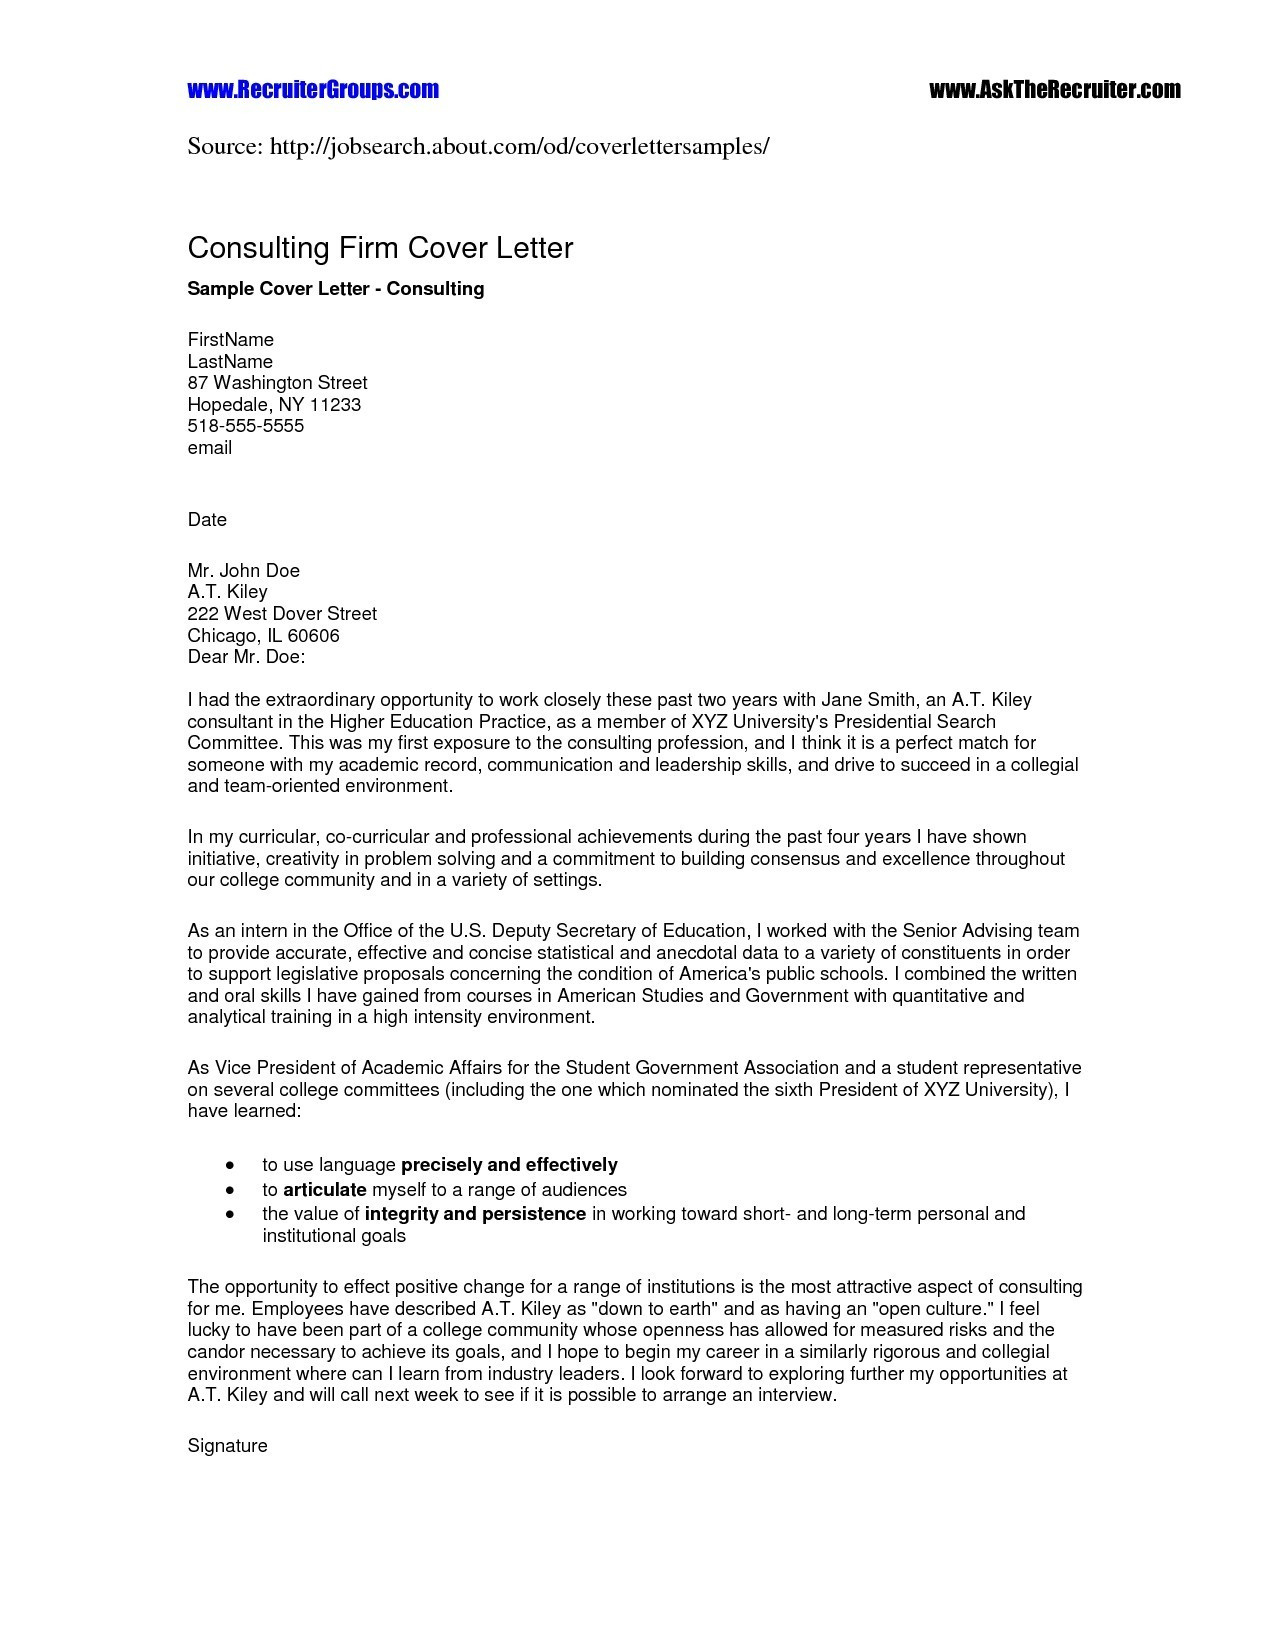 Debt Collection Letter Template - Debt Collection Dispute Letter Elegant Debt Collection Letter